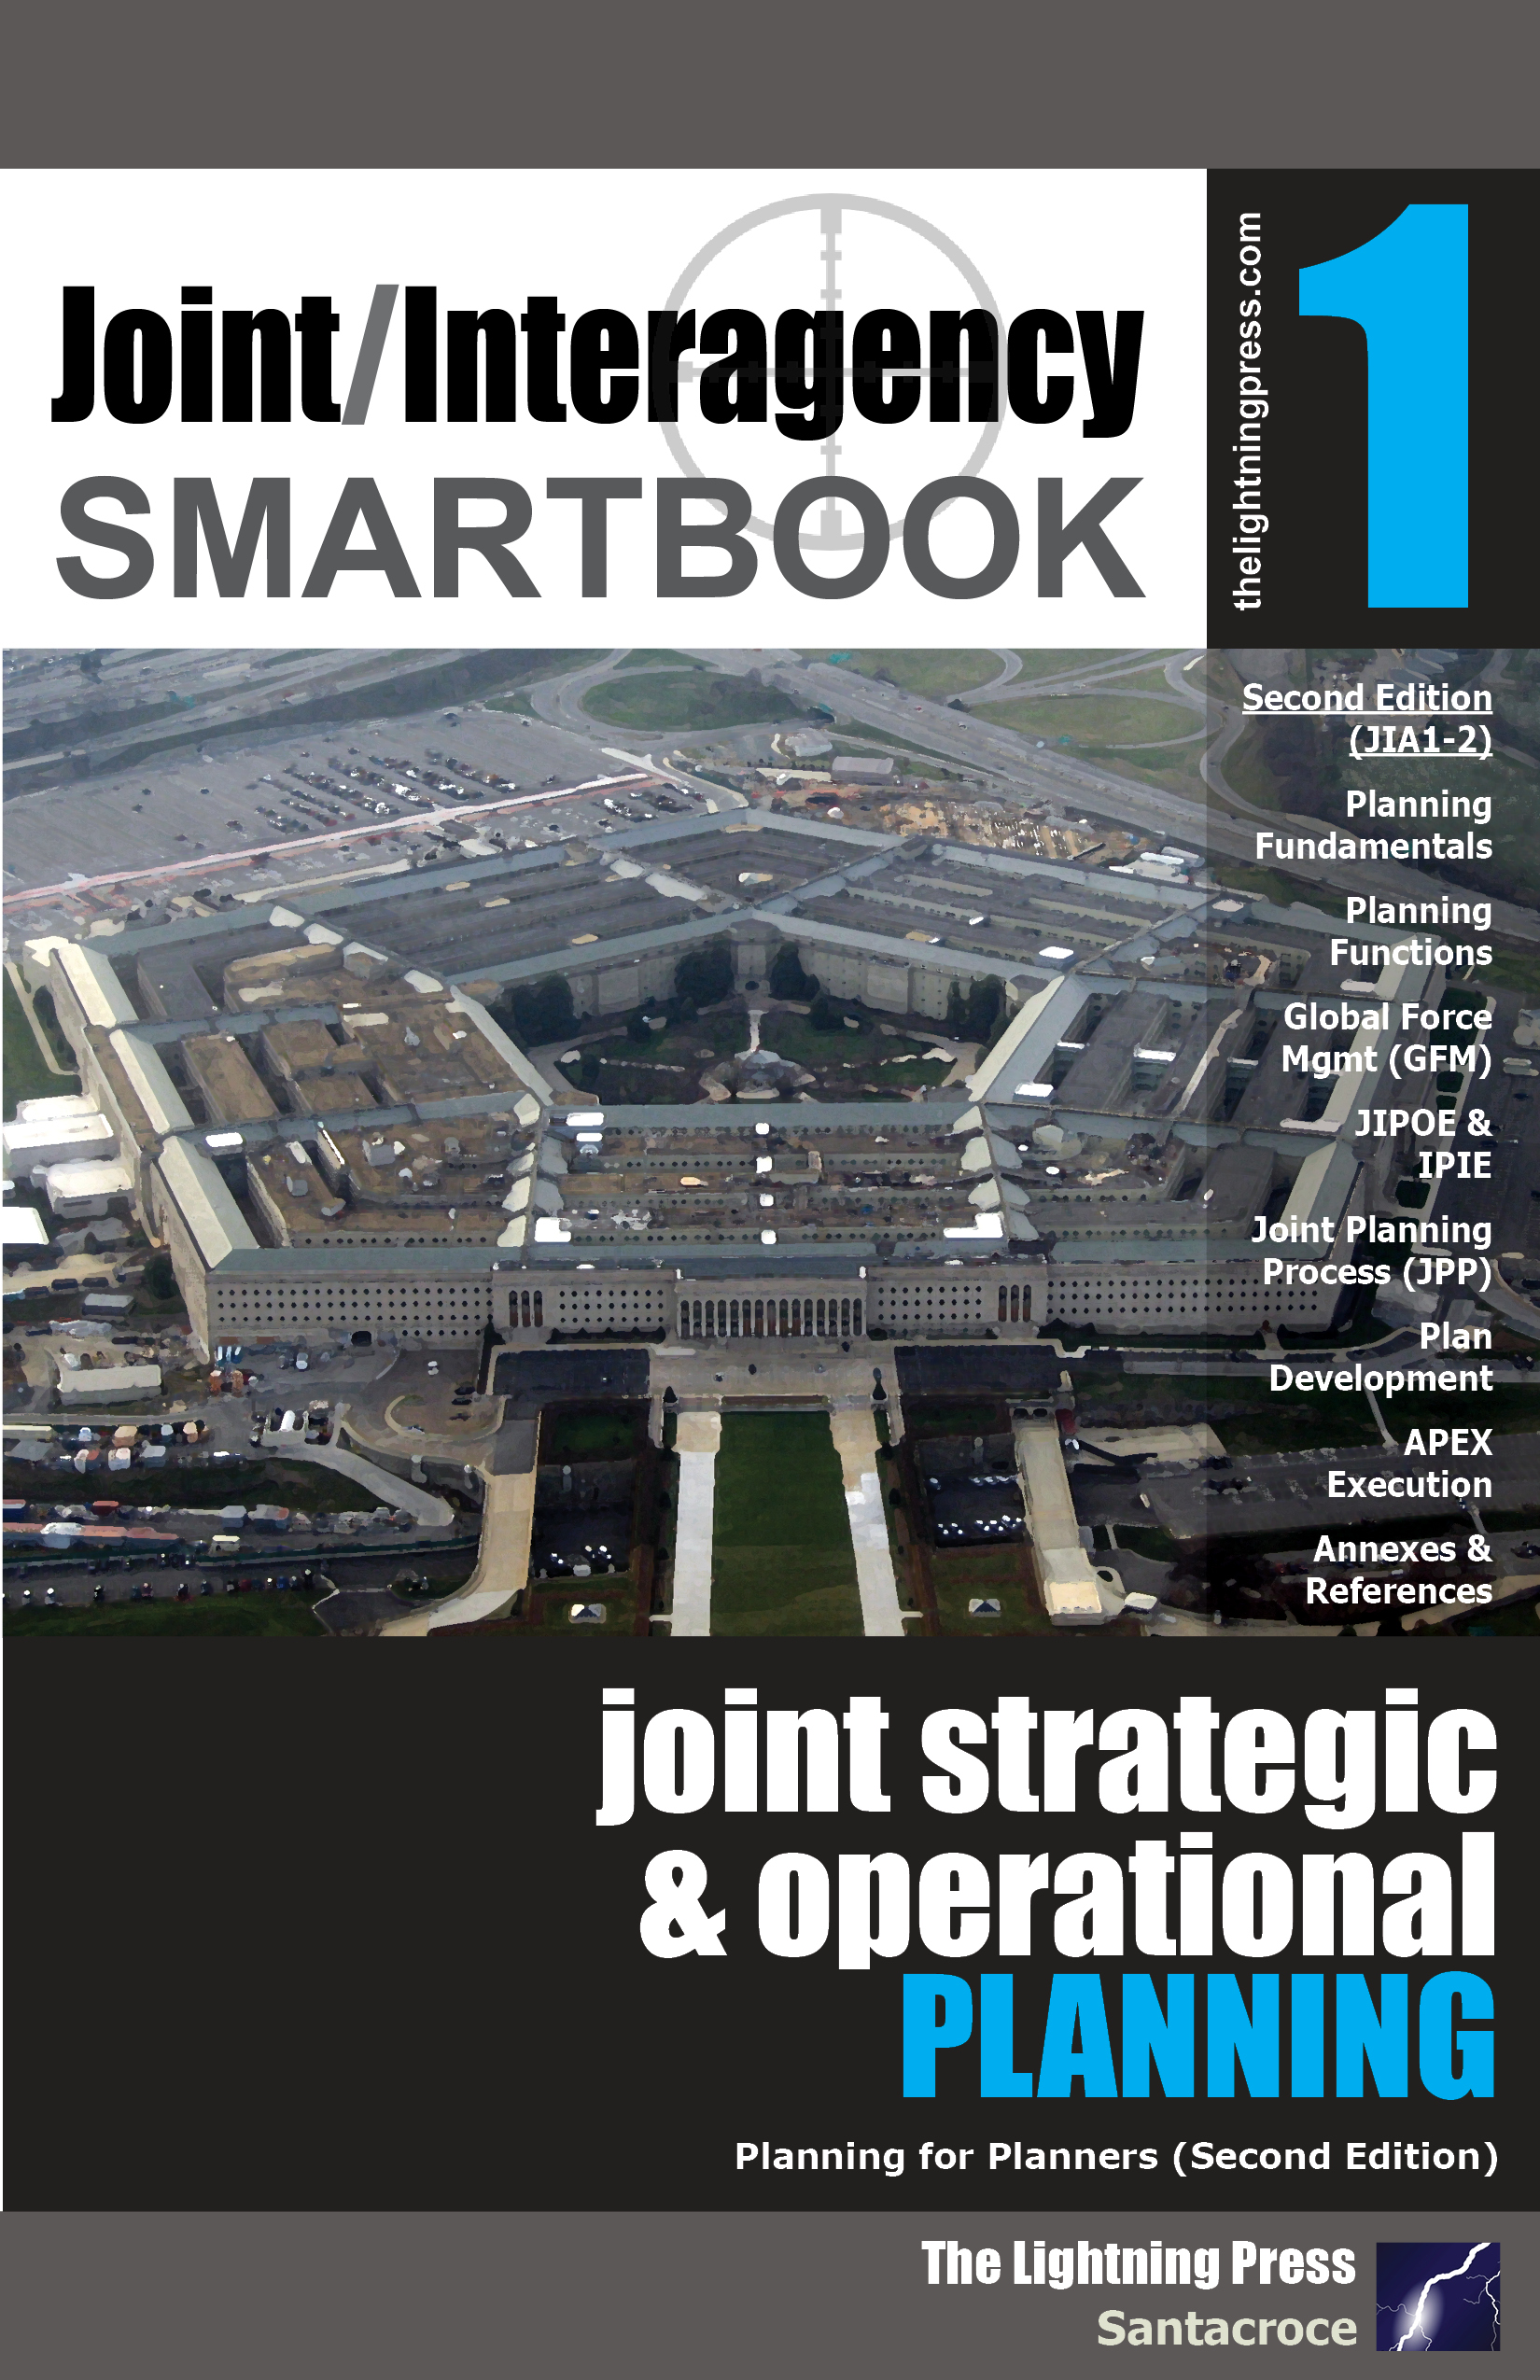 Joint/Interagency SMARTbook 1 – Joint Strategic & Operational Planning, 2nd Ed.